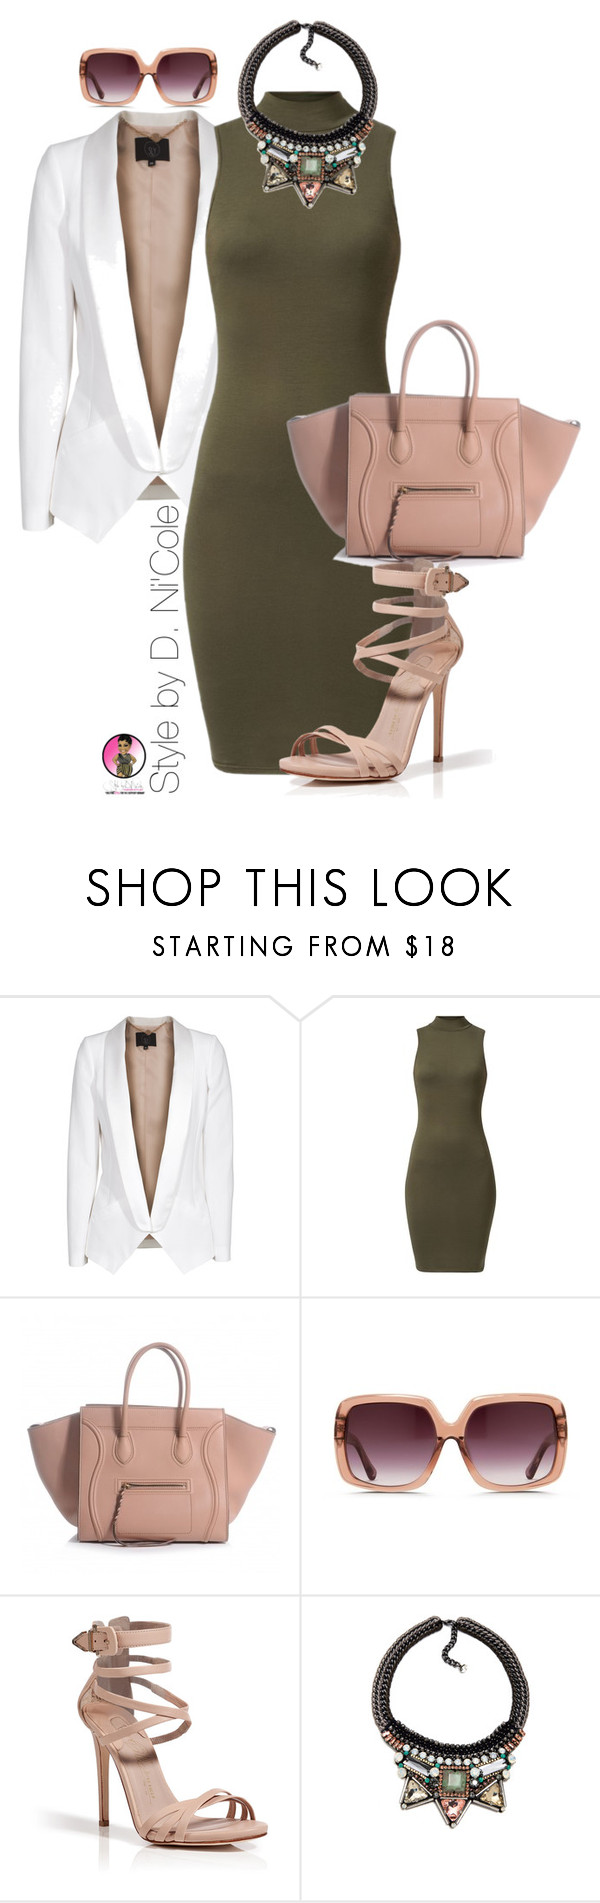 """""""Untitled #2358"""" by stylebydnicole ❤ liked on Polyvore featuring SLY 010, Matthew Williamson, Le Silla and Nocturne"""